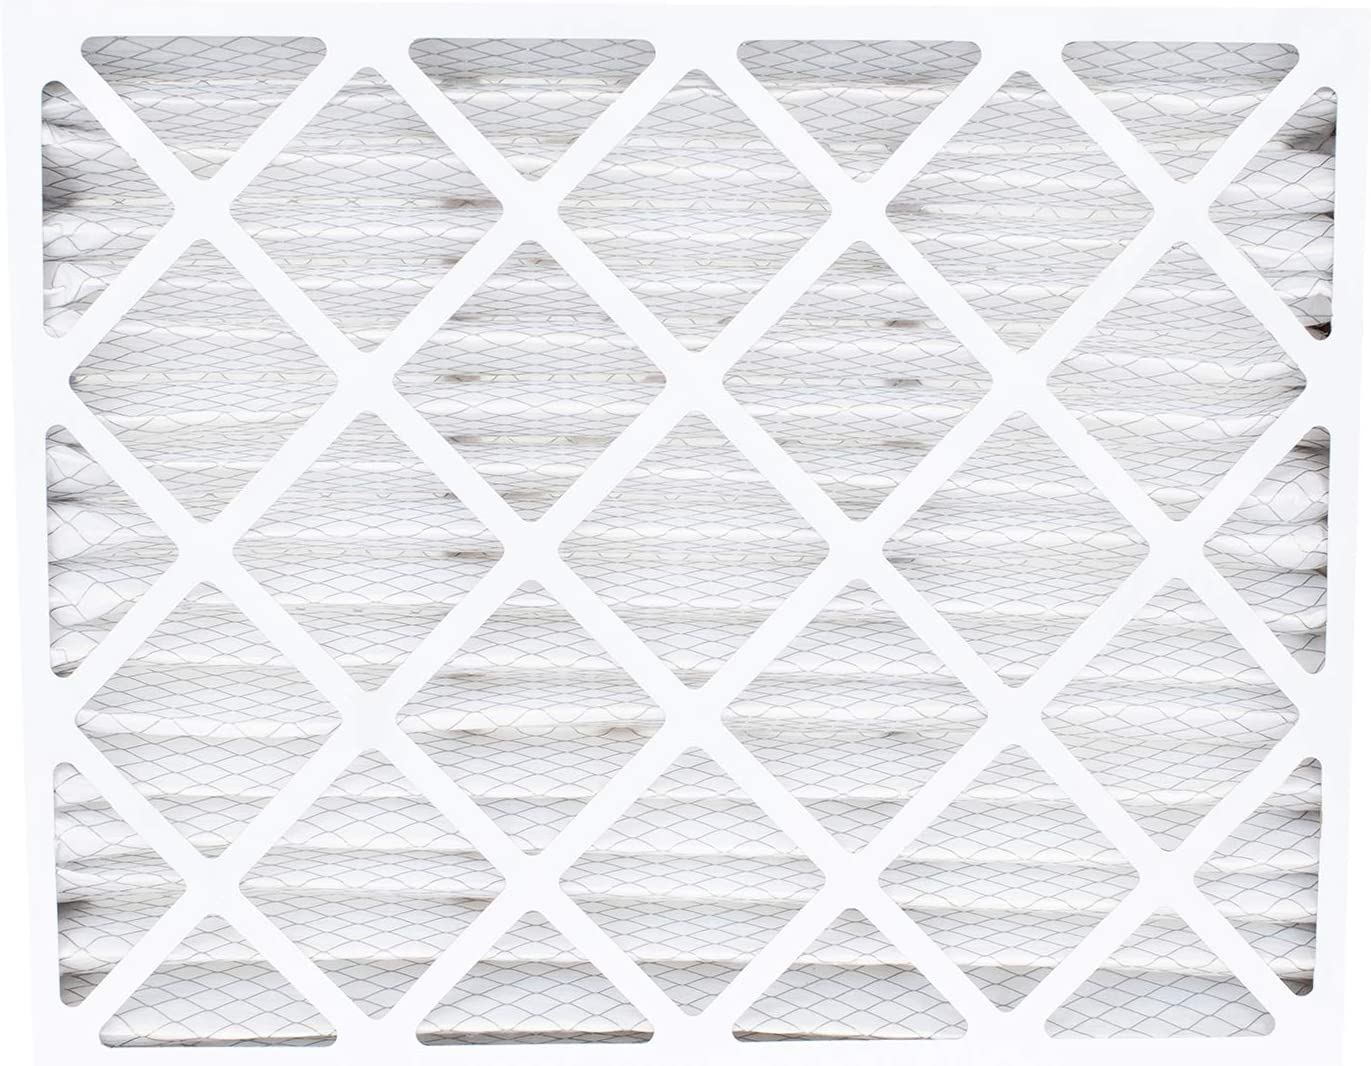 FilterBuy 20x25x5 Air Bear Trion 229990-102 Compatible Pleated AC Furnace Air Filters MERV 8, AFB Silver 2 Pack